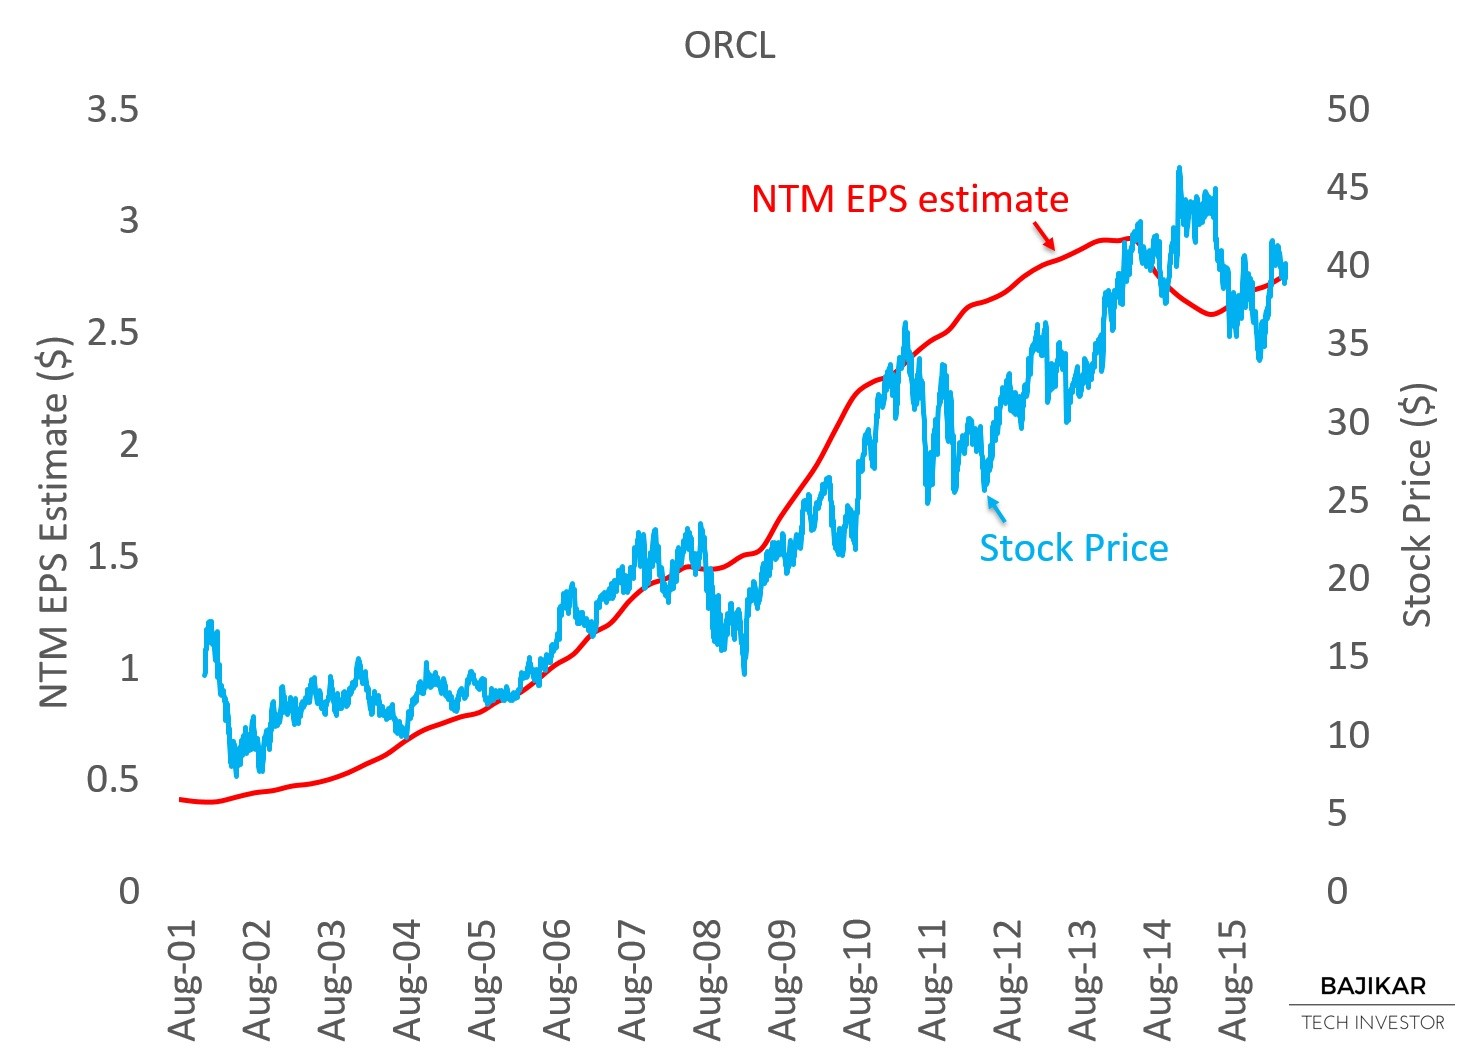 ORCL NTM EPS vs. Stock Price